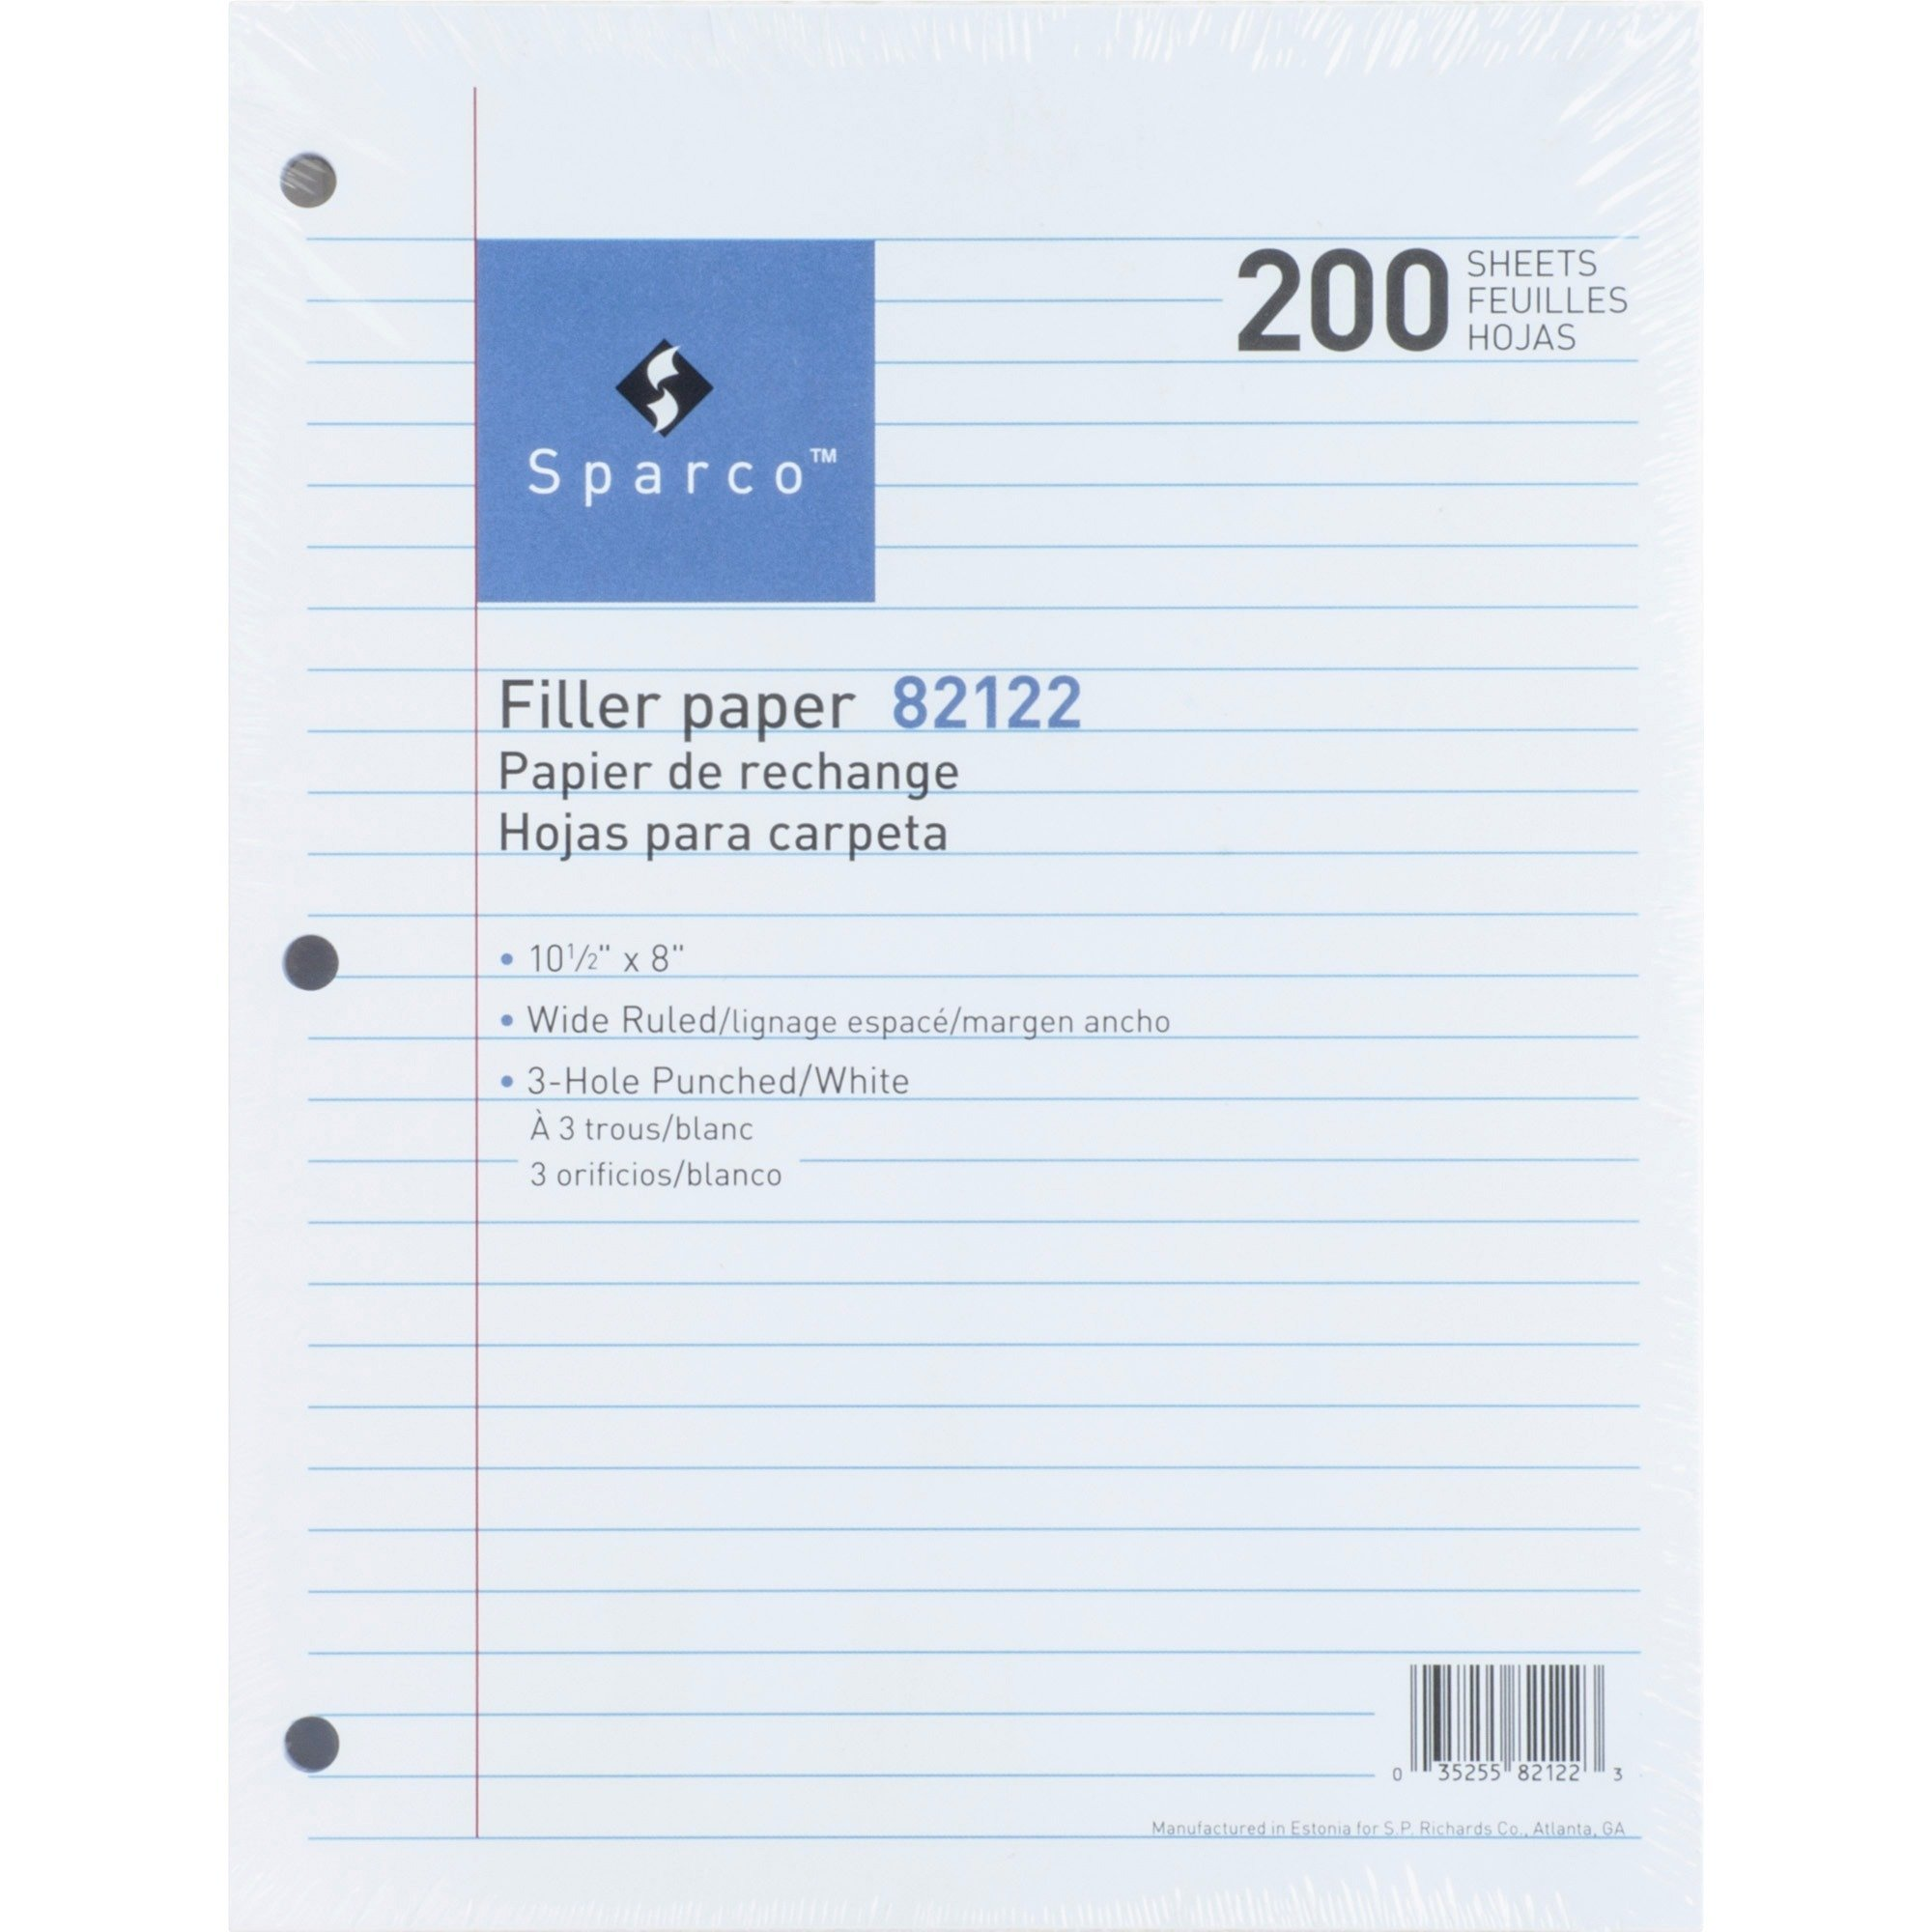 Sparco Standard White 3HP Filler Paper - 200 Sheets